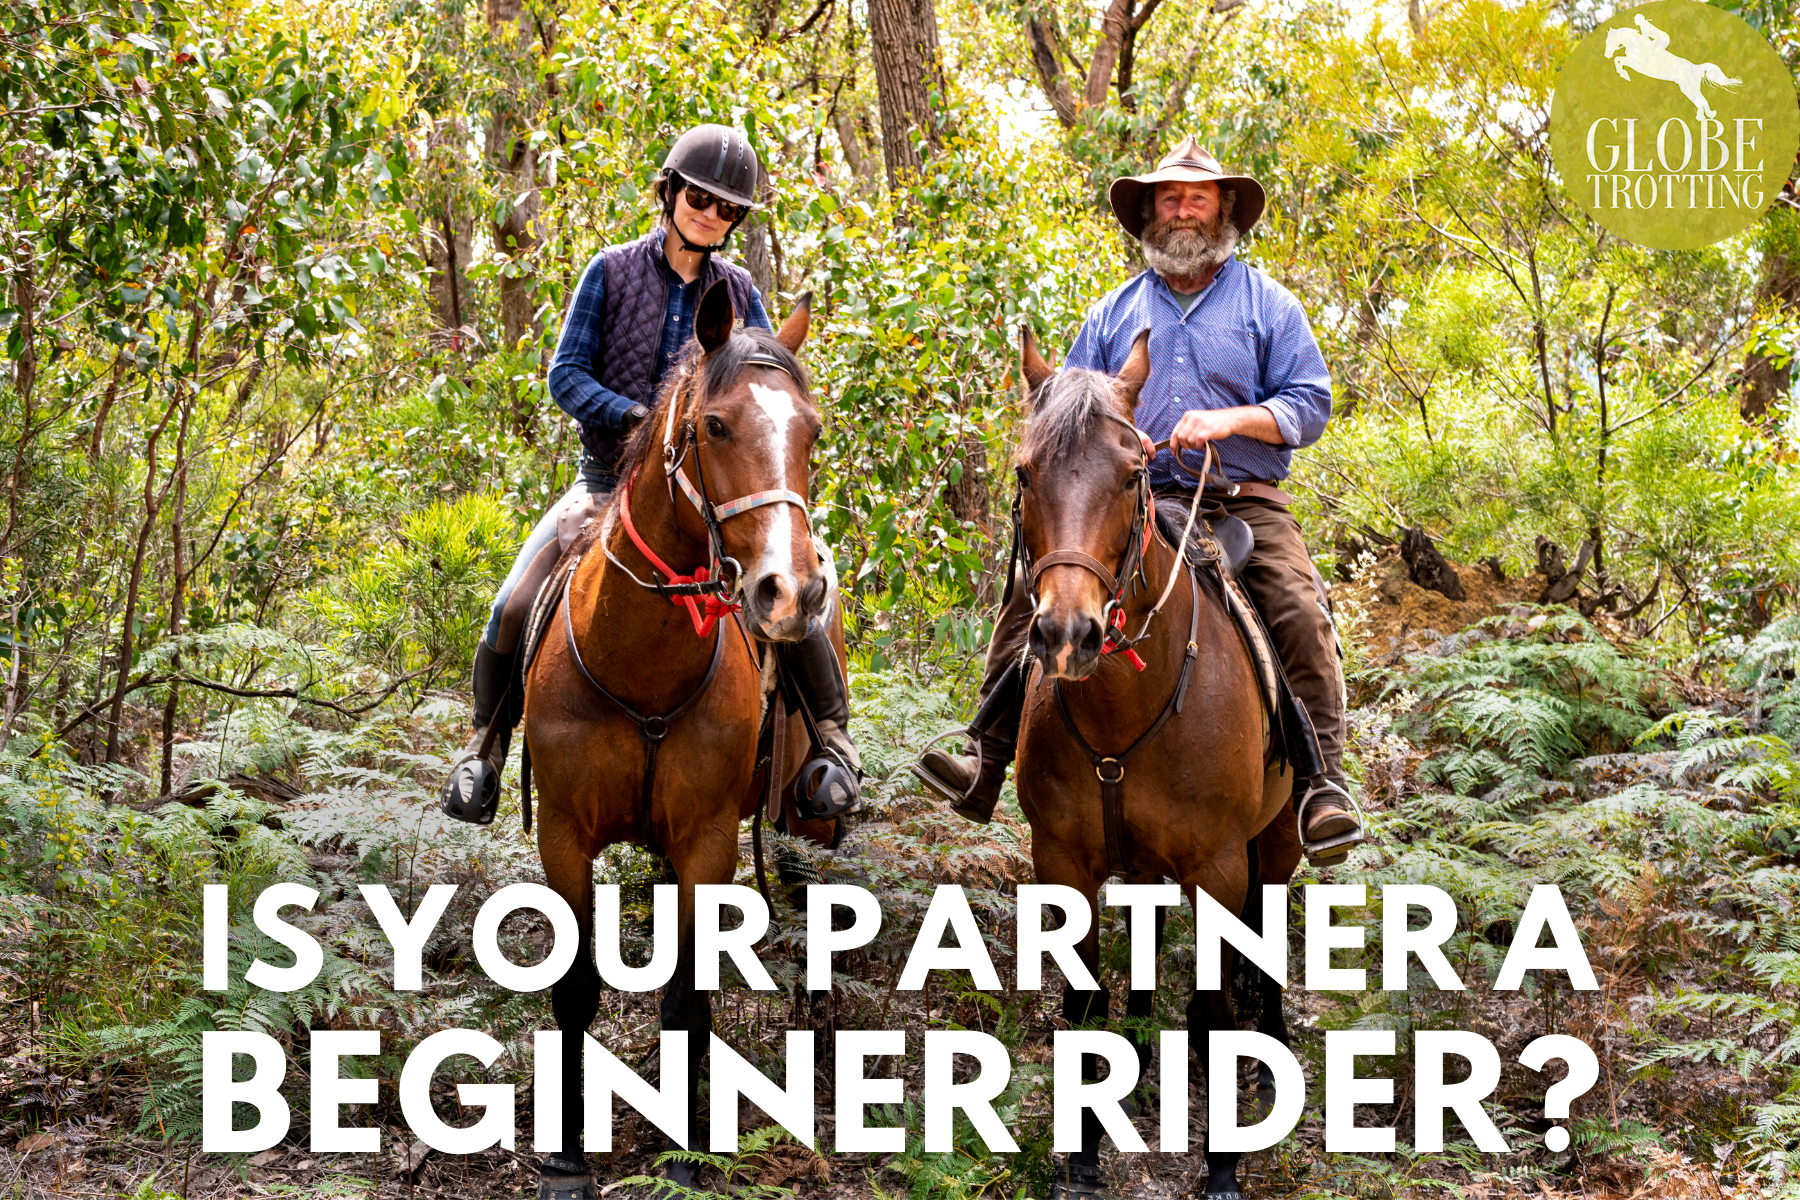 Is your partner a beginner rider? Globetrotting horse riding holidays